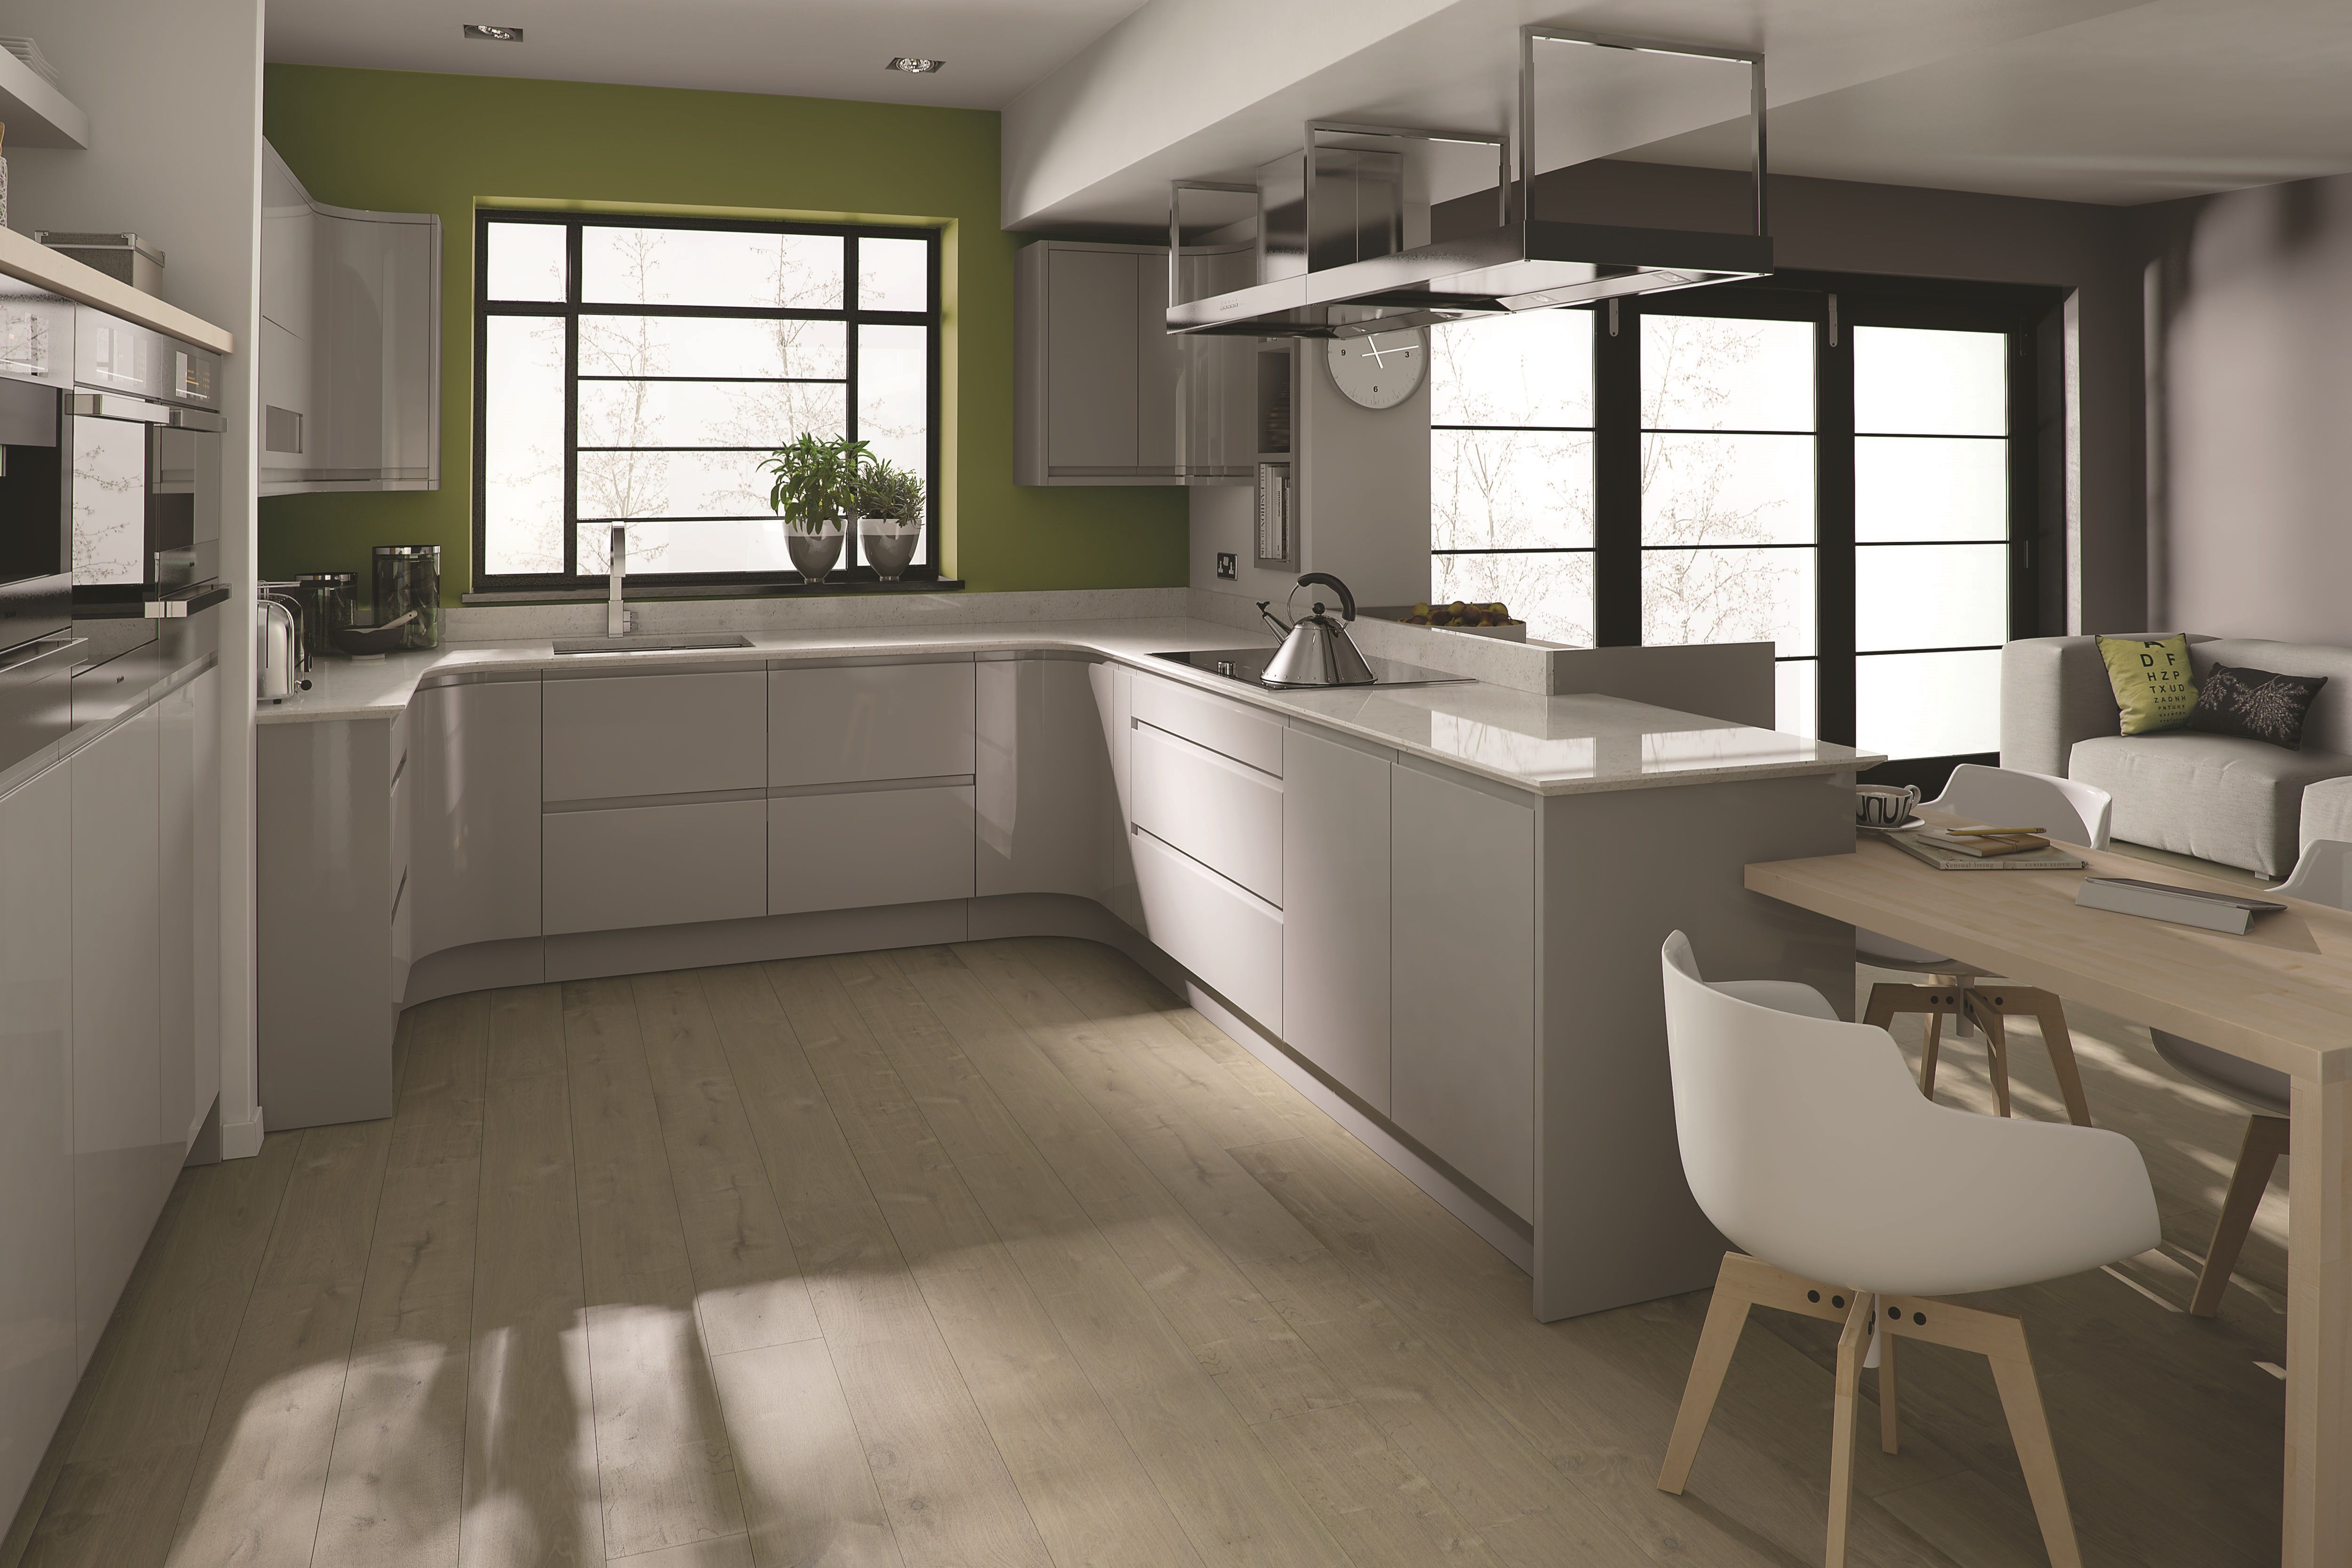 Best Remo Dove Grey This U Shaped Kitchen Design Makes Great 400 x 300